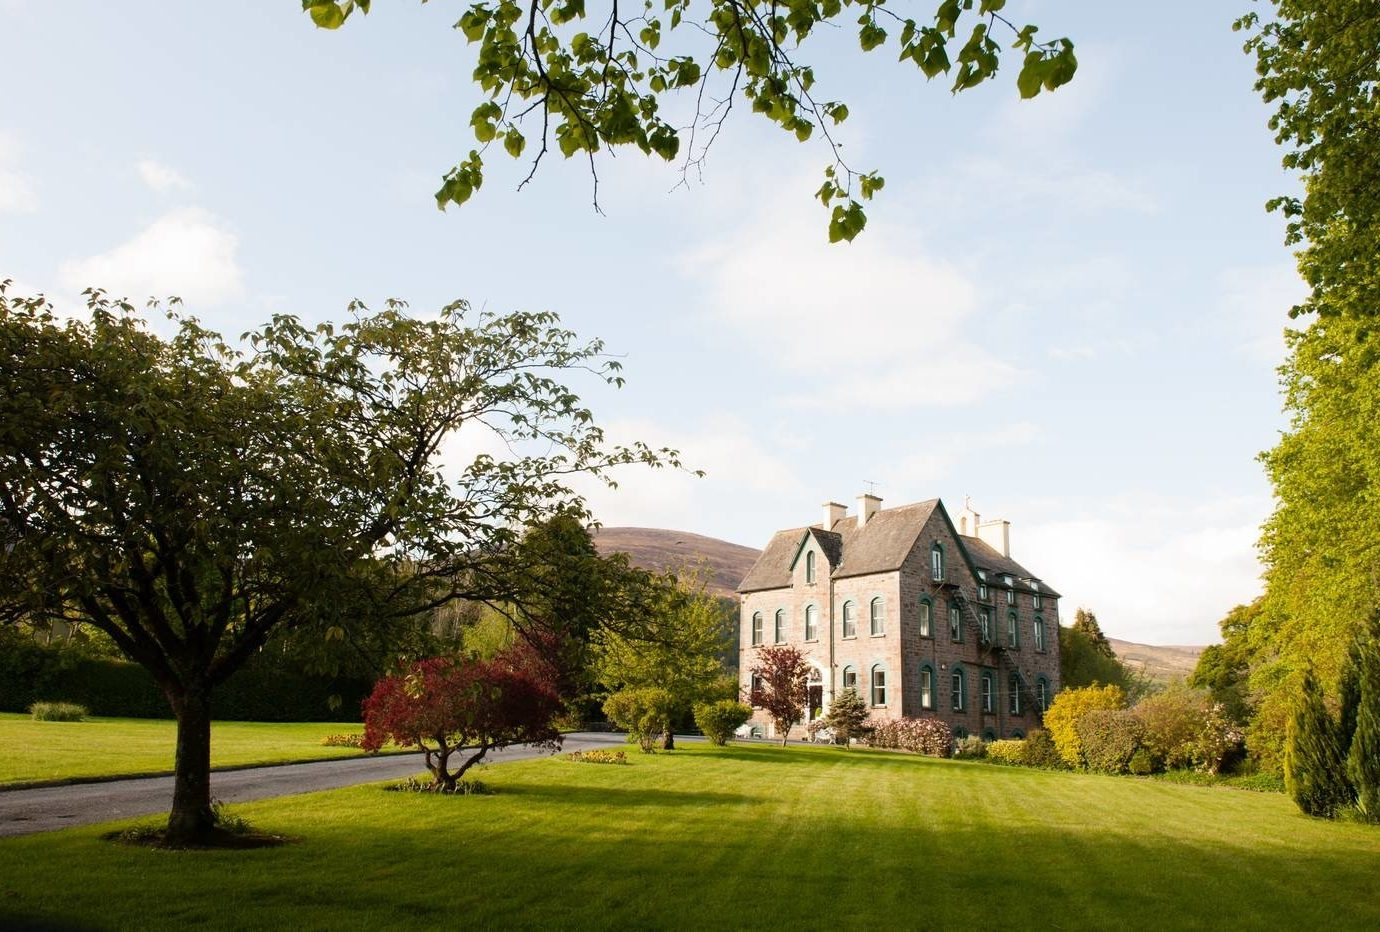 View of The Old Convent in Ireland